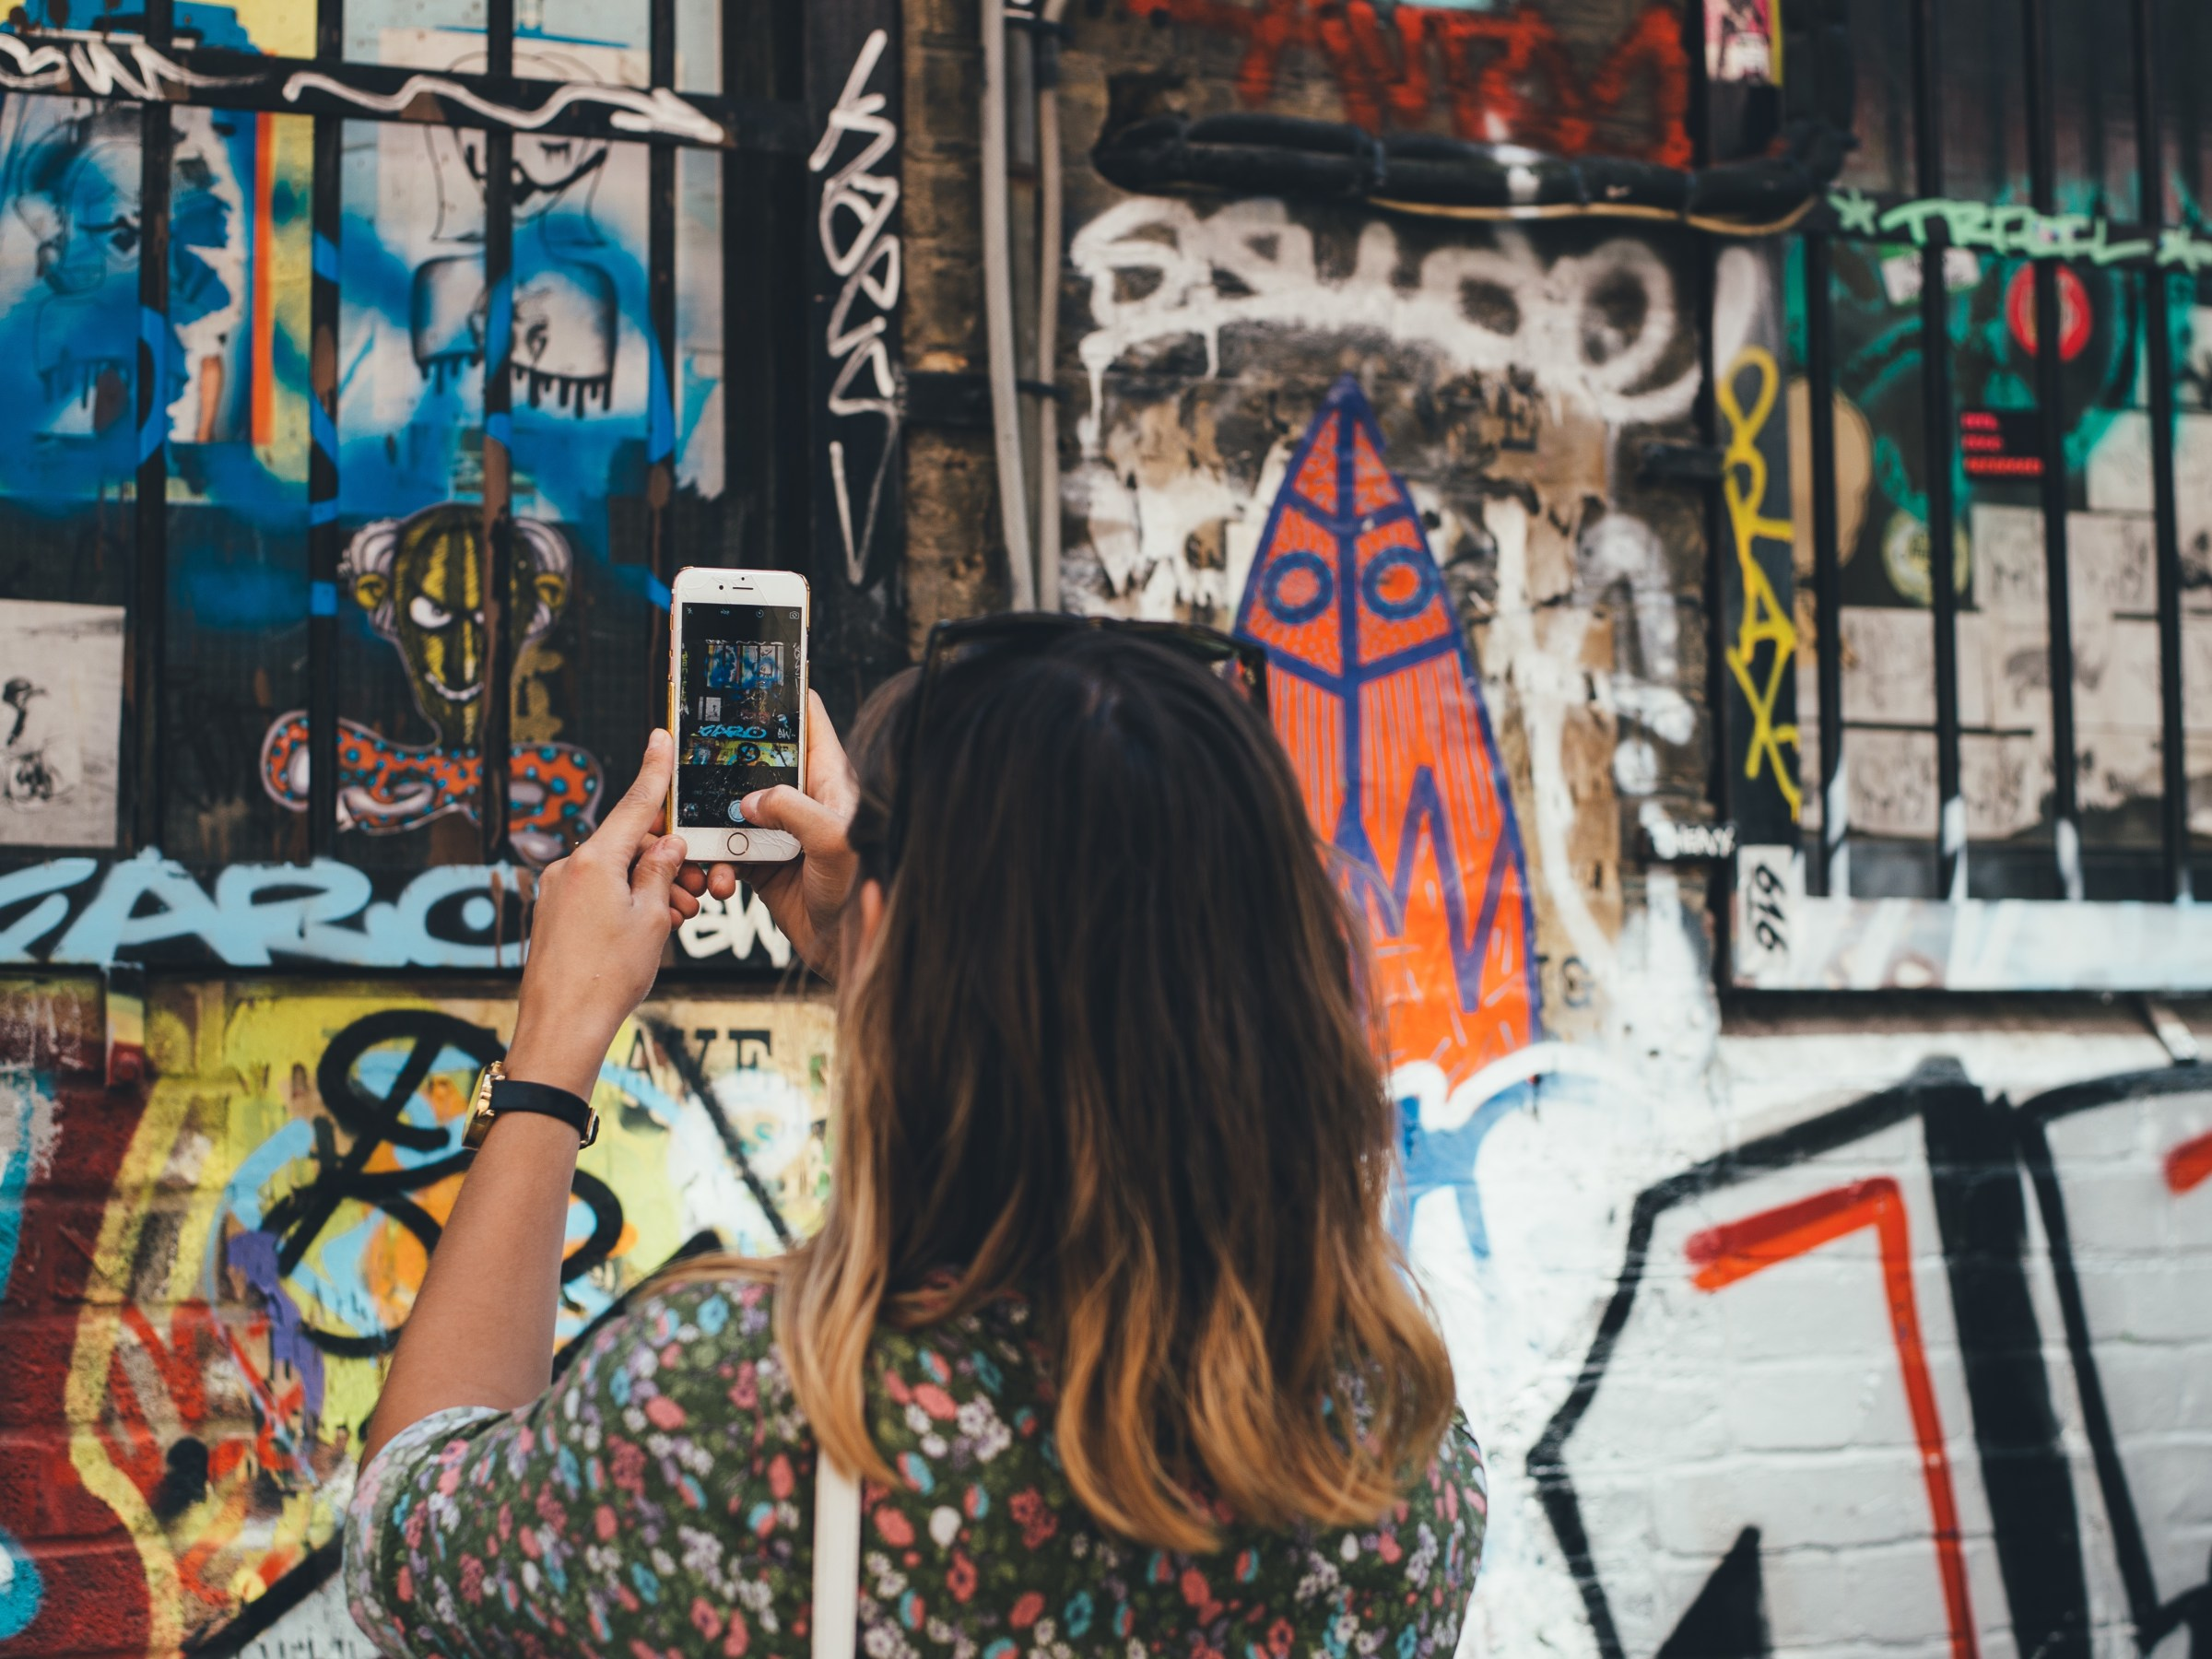 Woman taking pictures of graffiti using iphone